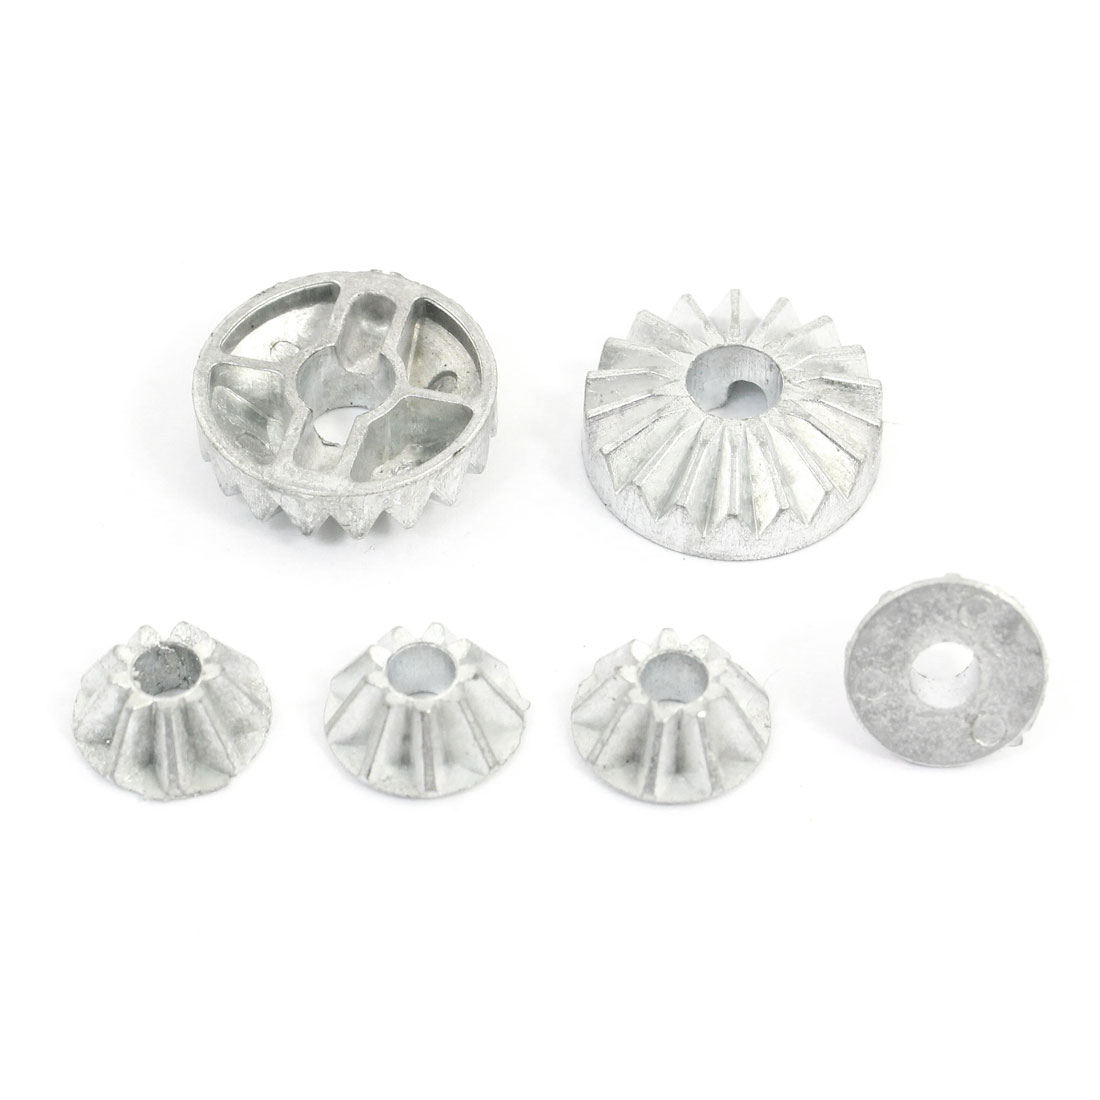 81042 Diff. Pinions + Bevel Gears + Pin Set for RC Model 1:8 94088 Car Vehicle